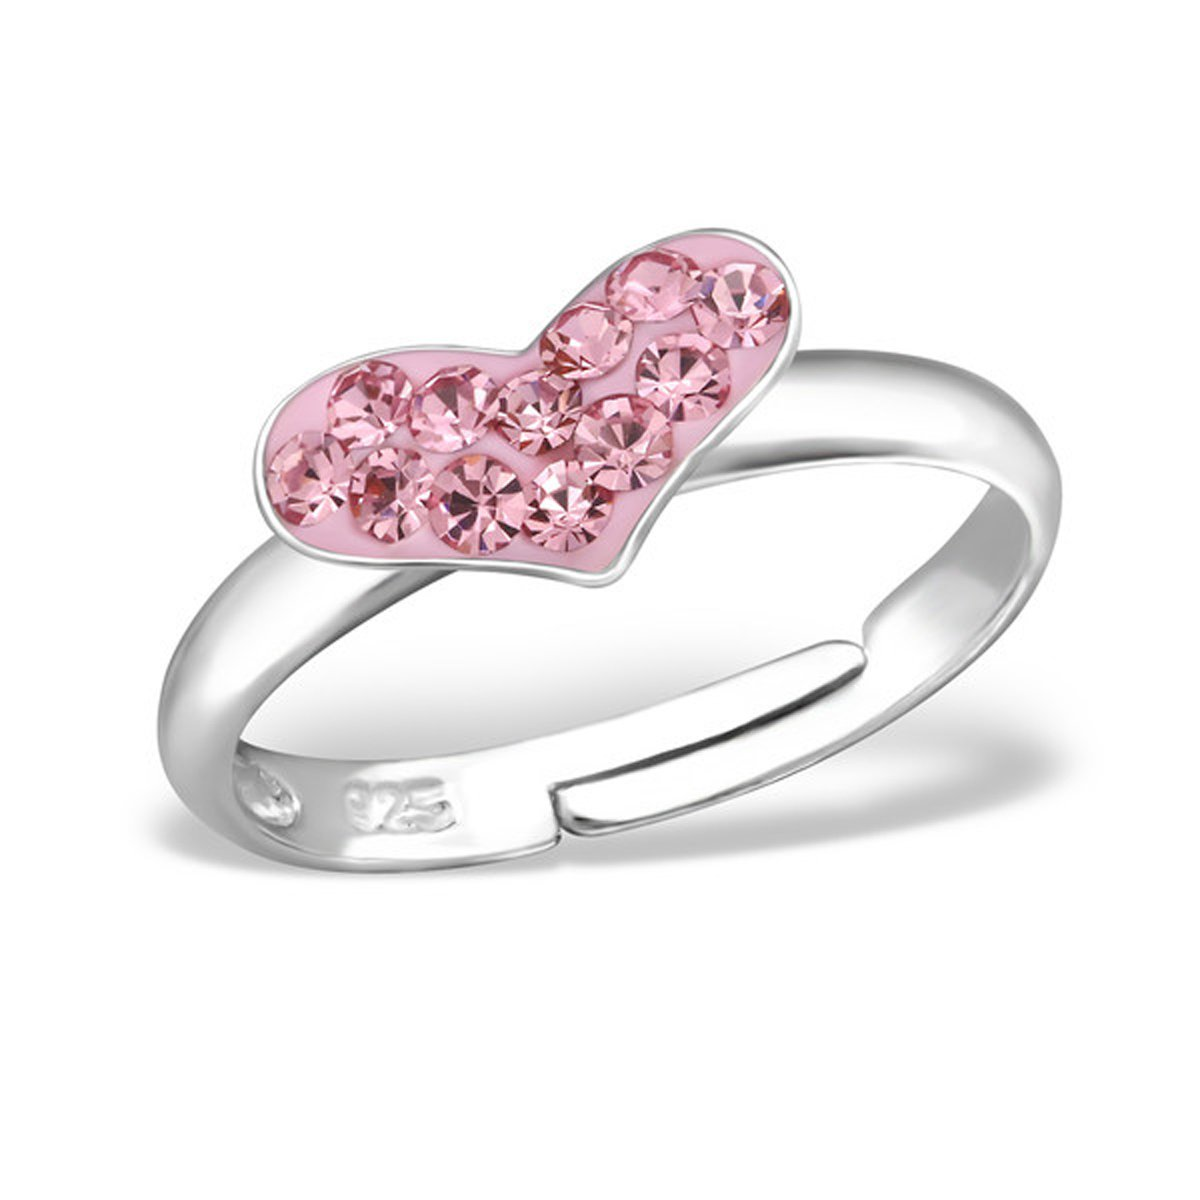 Cute Pink Crystal Heart Ring Size Adjustable 2-4 Girls Sterling Silver 925 (E15407)